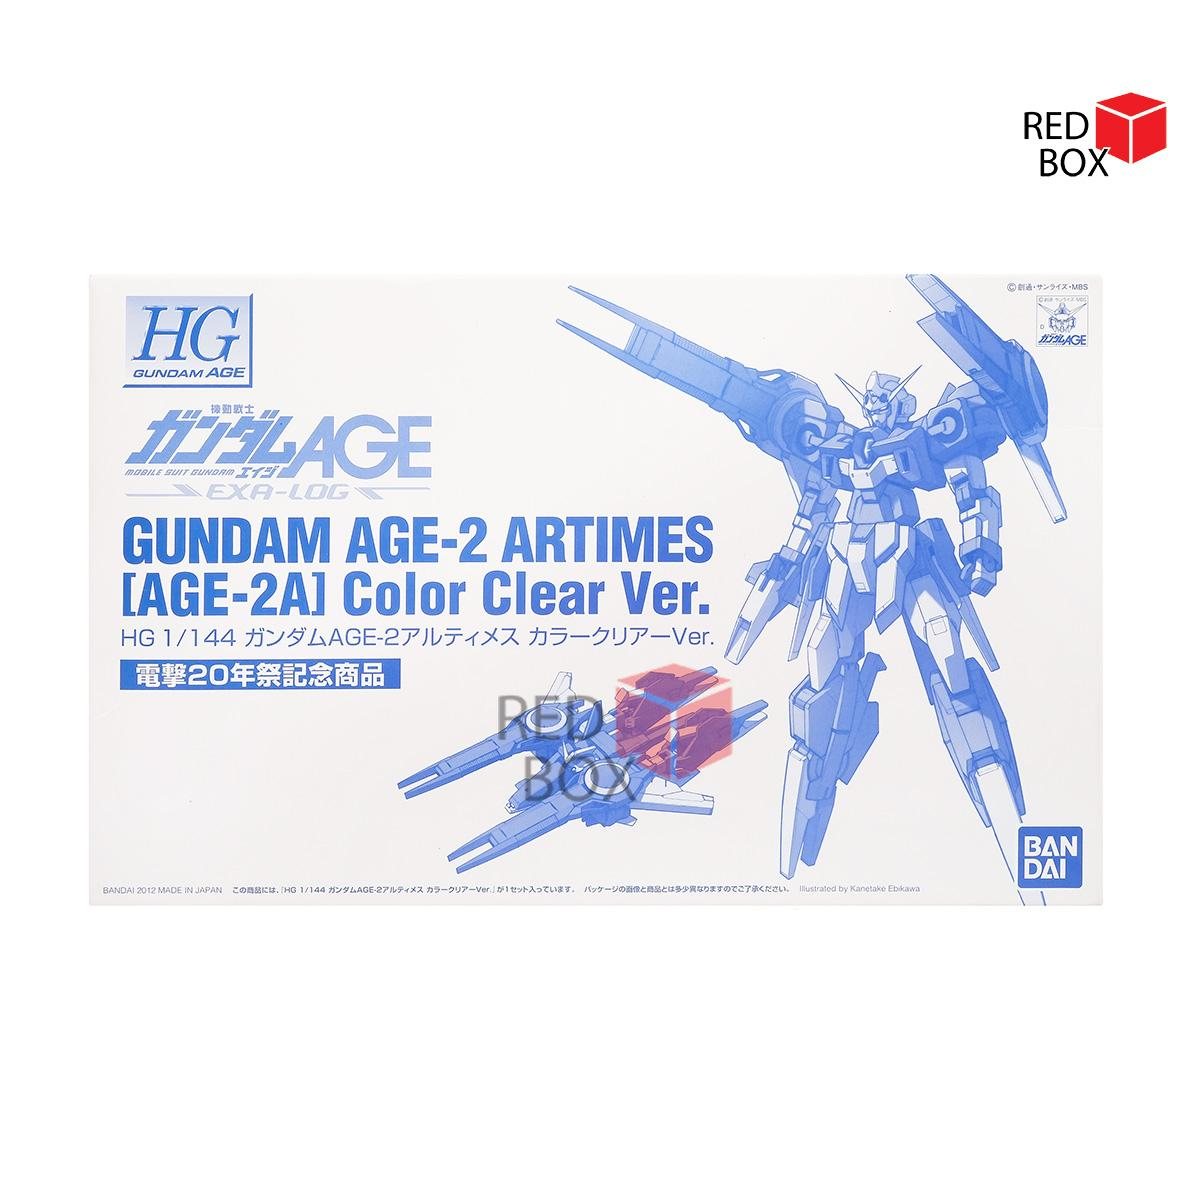 Termurah Mainan Koleksi HG 1/144 Age 2 Artimes Clear Color ver Limited Anime Cartoon